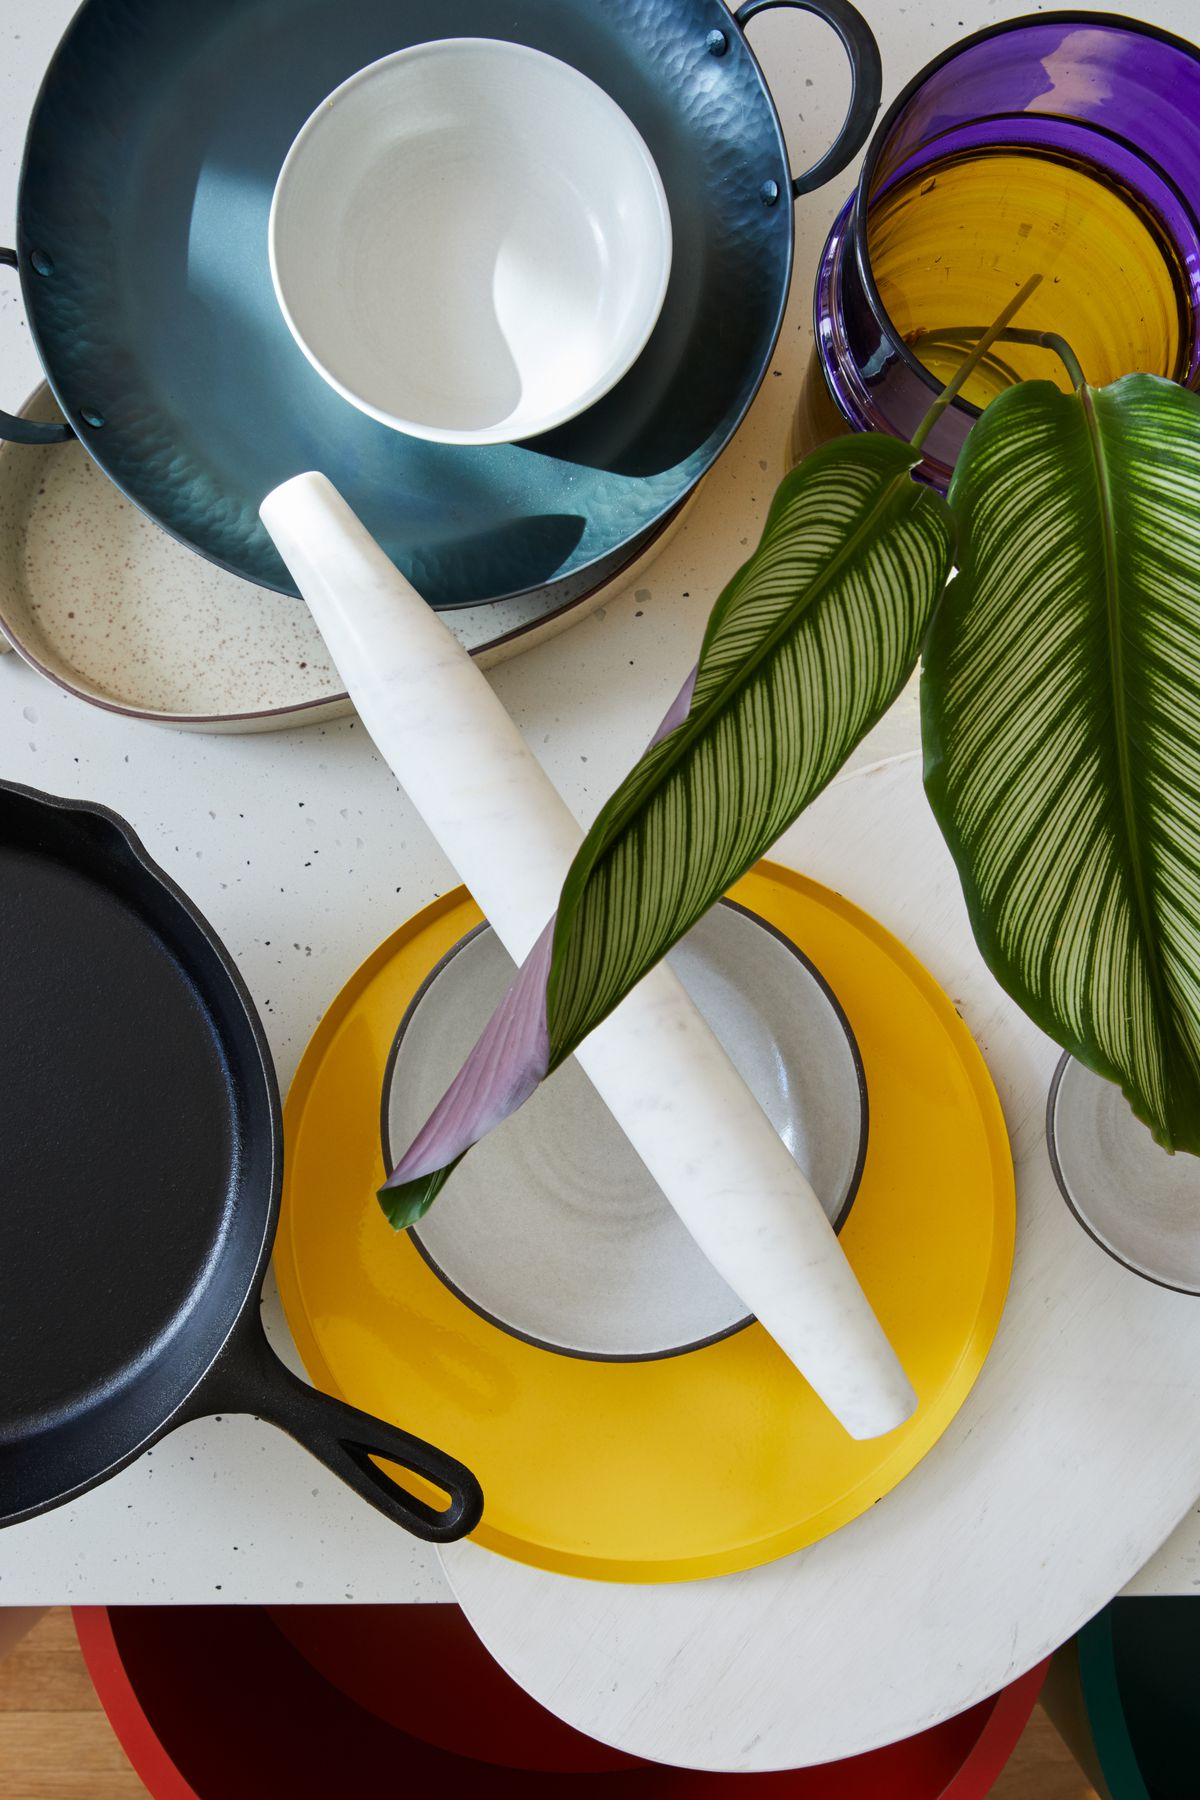 A grouping of kitchen items: a rolling pin, bowls, and a skillet.